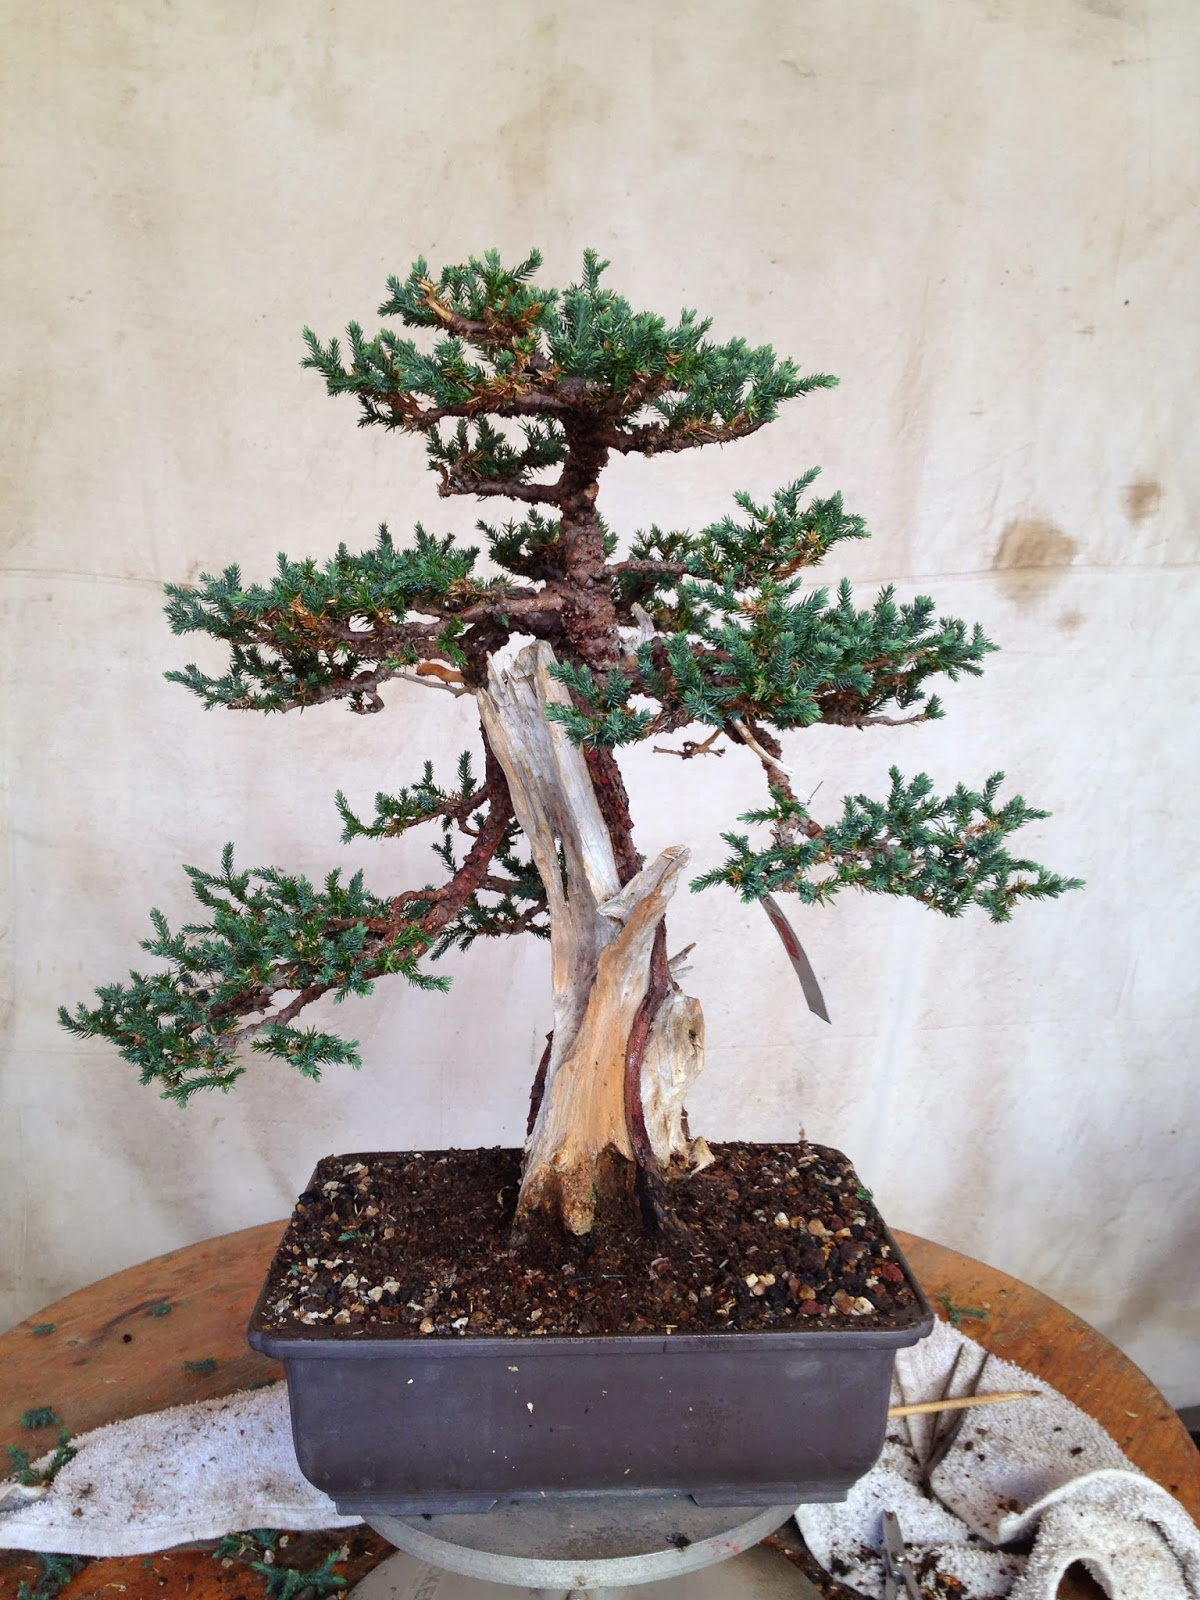 Bonsaibp39s Bonsai Blog